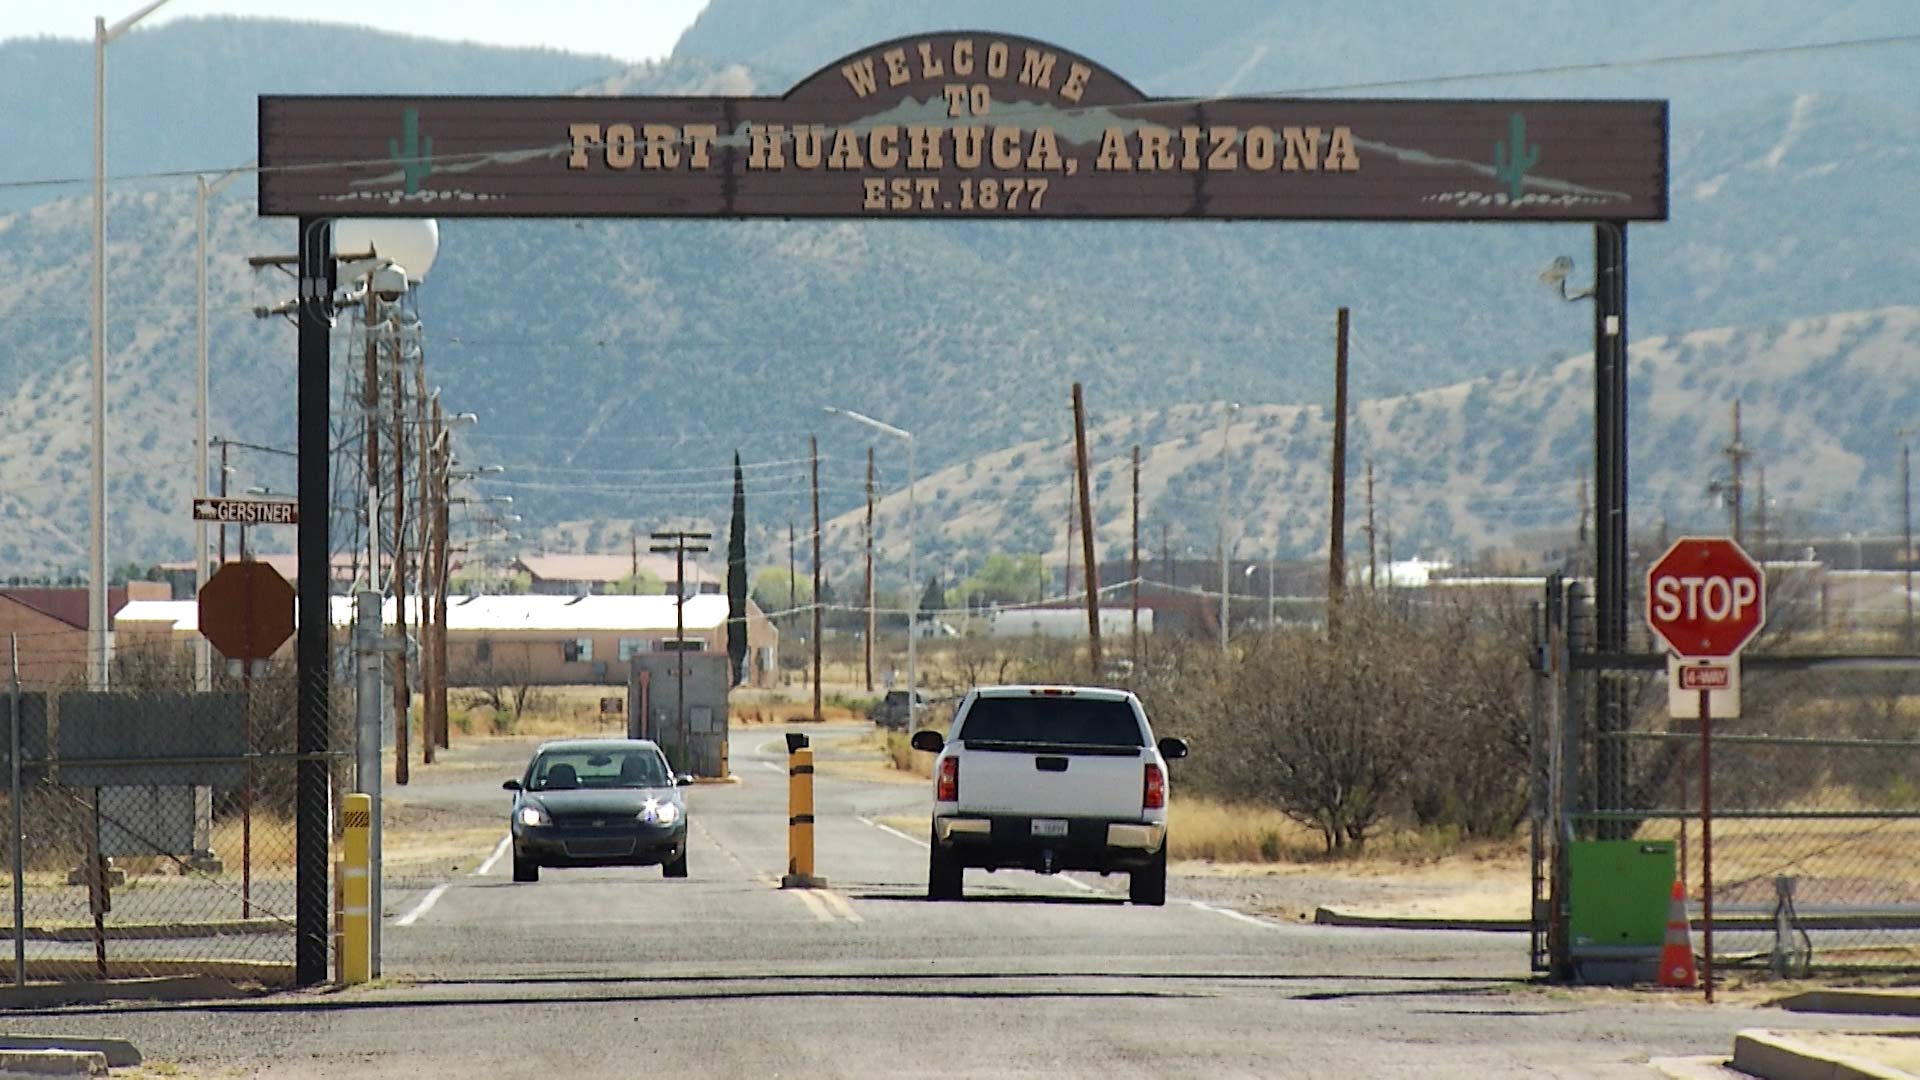 Fort Huachuca, Arizona.